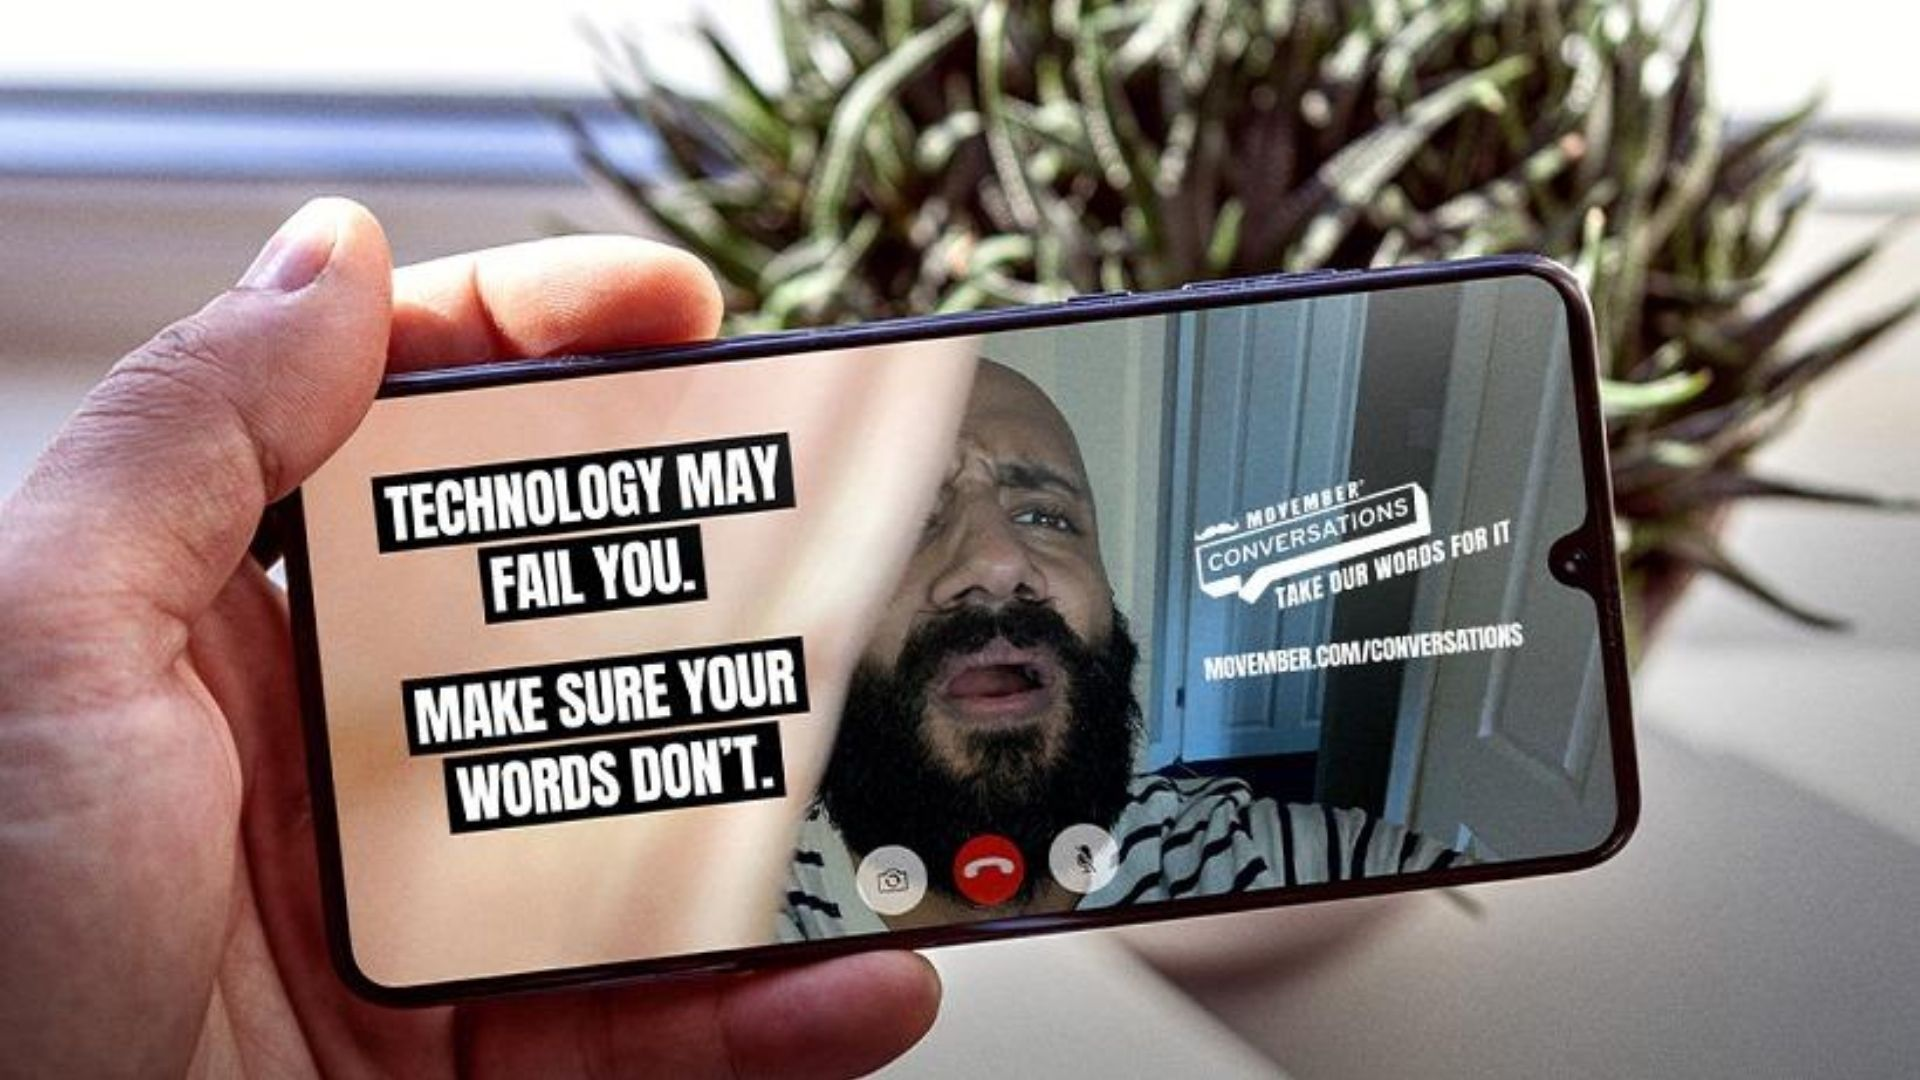 Image of IPhone held in man's  left hand. On the screen of the IPhone is a bearded man looking dismayed and text reading 'Technology may fail you. Make sure your words don't.'